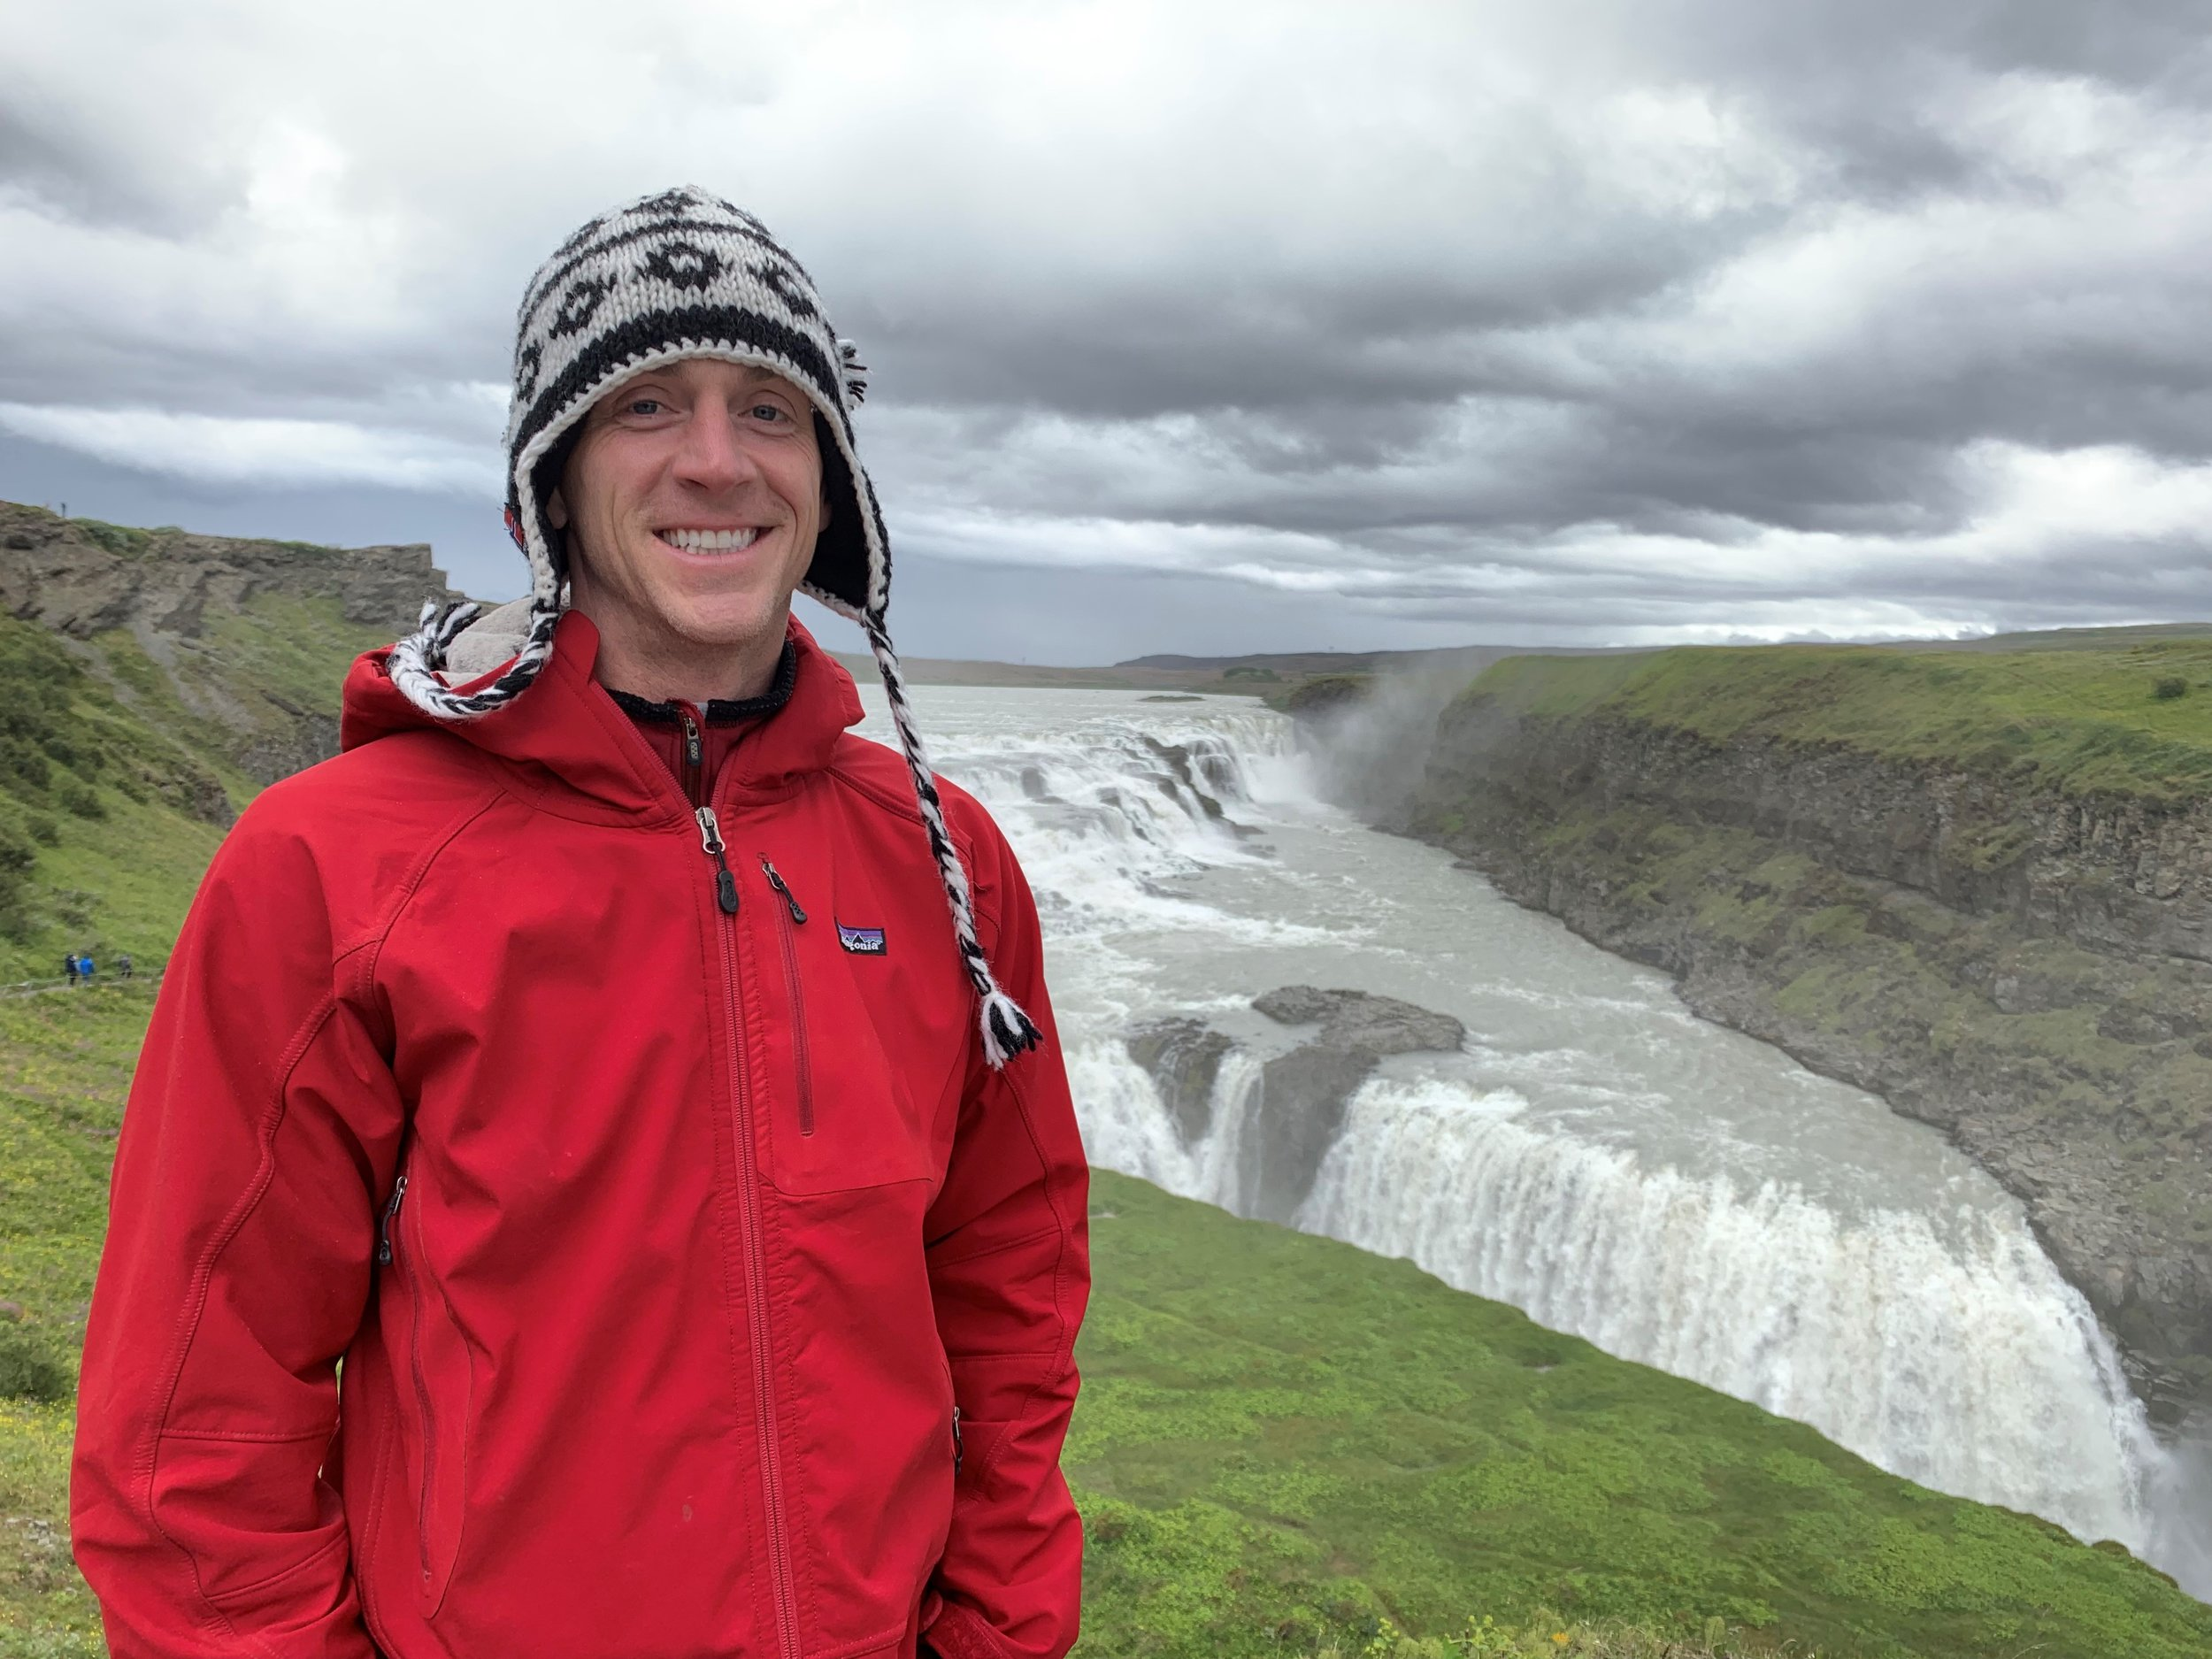 Why not smile more? You're in Iceland.